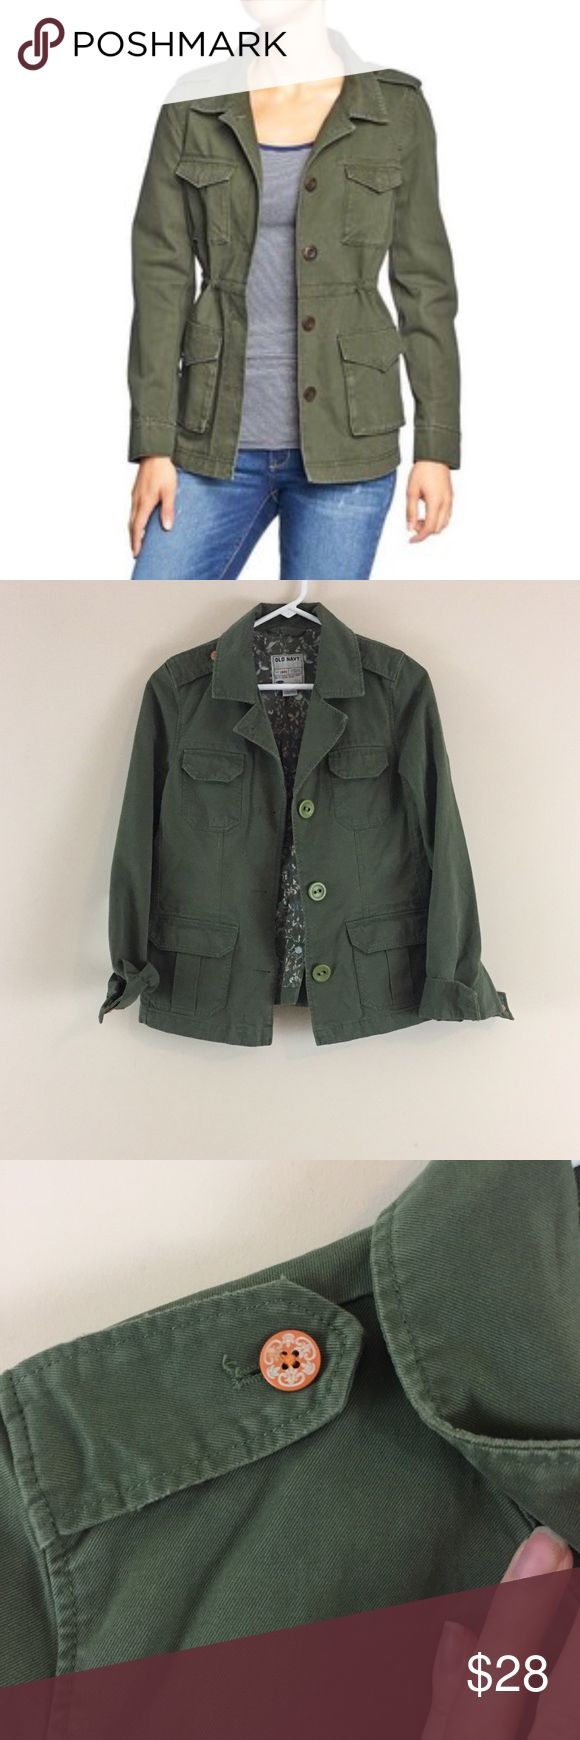 "Old Navy 4-pocket olive green military jacket Old Navy four pocket military jacket in olive green. Distressed in pockets (made that way). Size Small. 17.5"" pit to pit and 24"" long. Stock photo is similar jacket not exact one. Only difference is mine does not have a drawstring waist. Old Navy Jackets & Coats Utility Jackets"